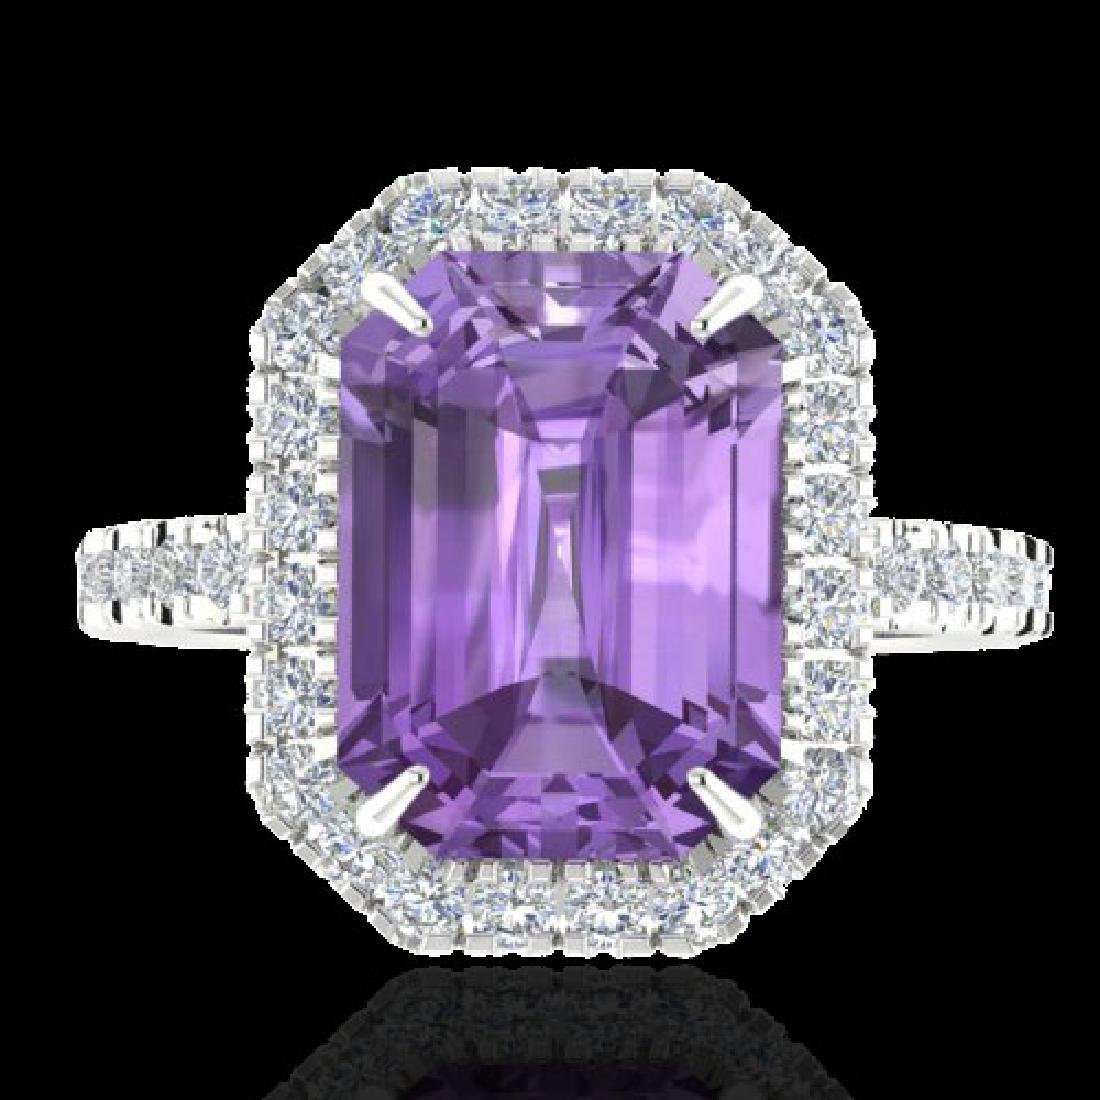 53 CTW Amethyst And Micro Pave VS/SI Diamond Certified